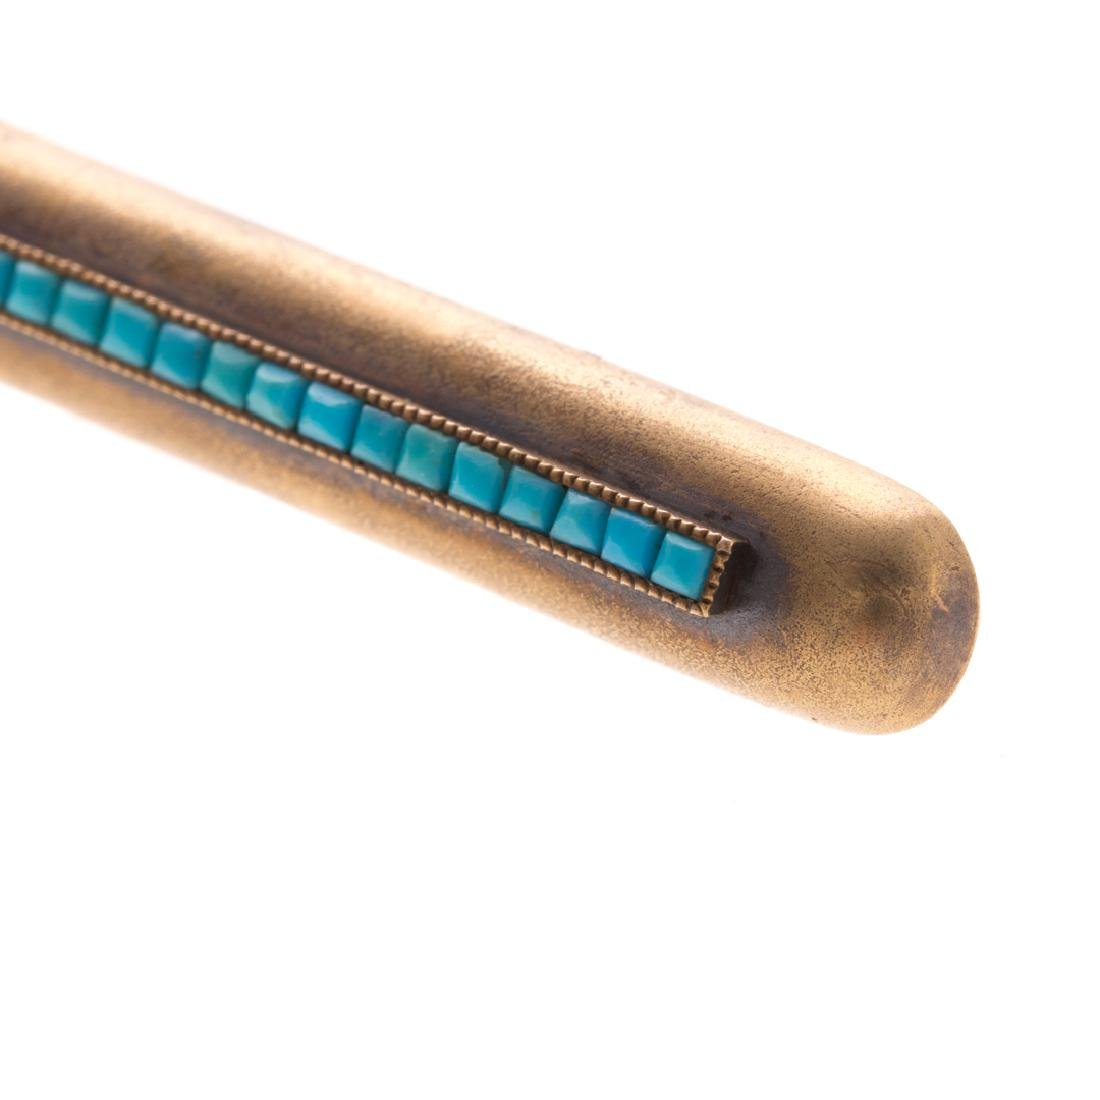 A Lady's Turquoise Bar Pin in 14K Gold - 2